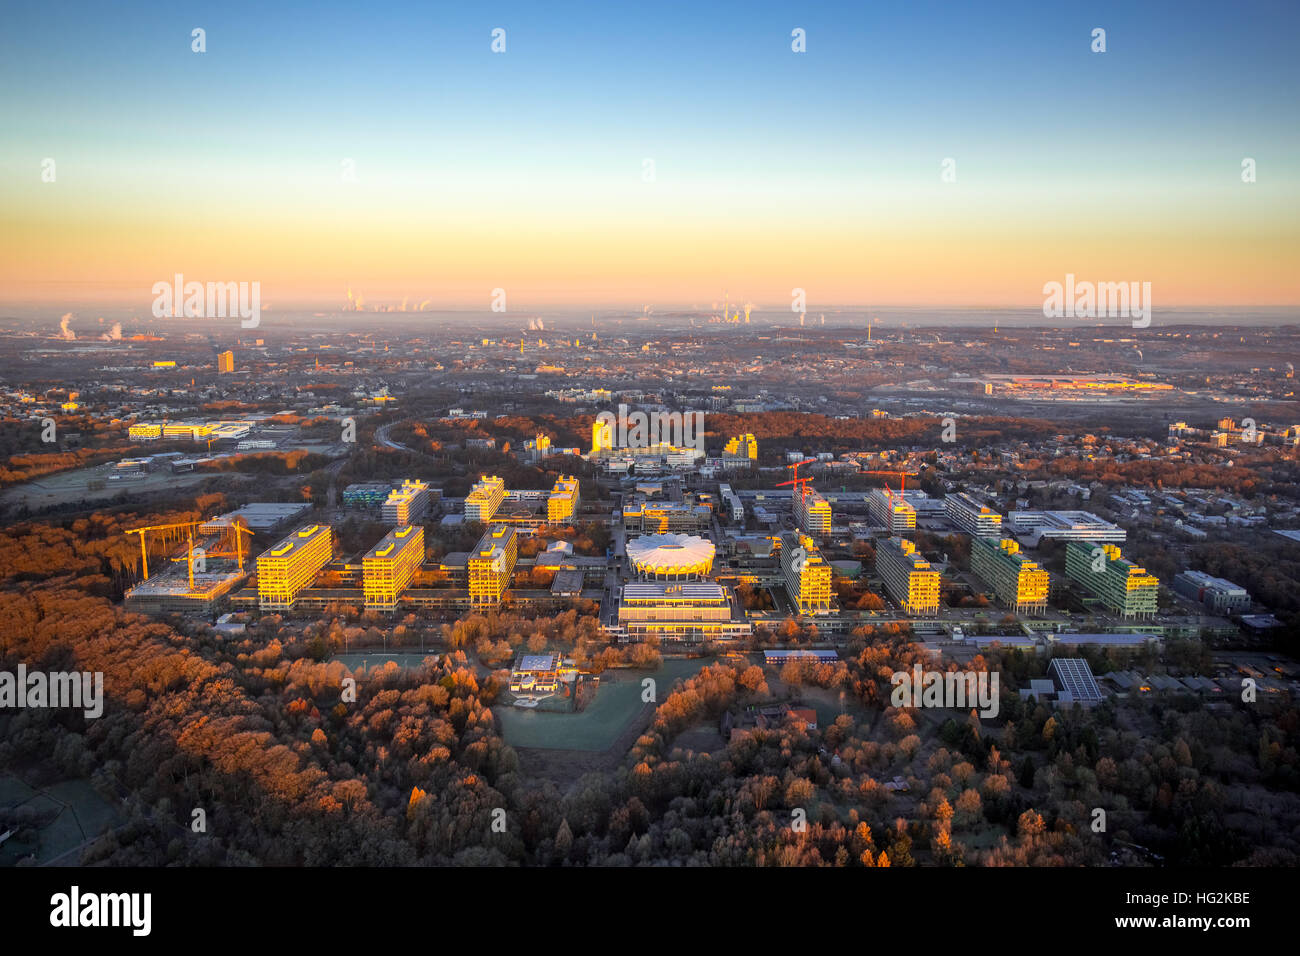 Aerial, Sunrise at RUB Ruhr University Bochum, Bochum, Ruhr aeria, north rhine-westphalia, Germany, Europe, Aerial Stock Photo